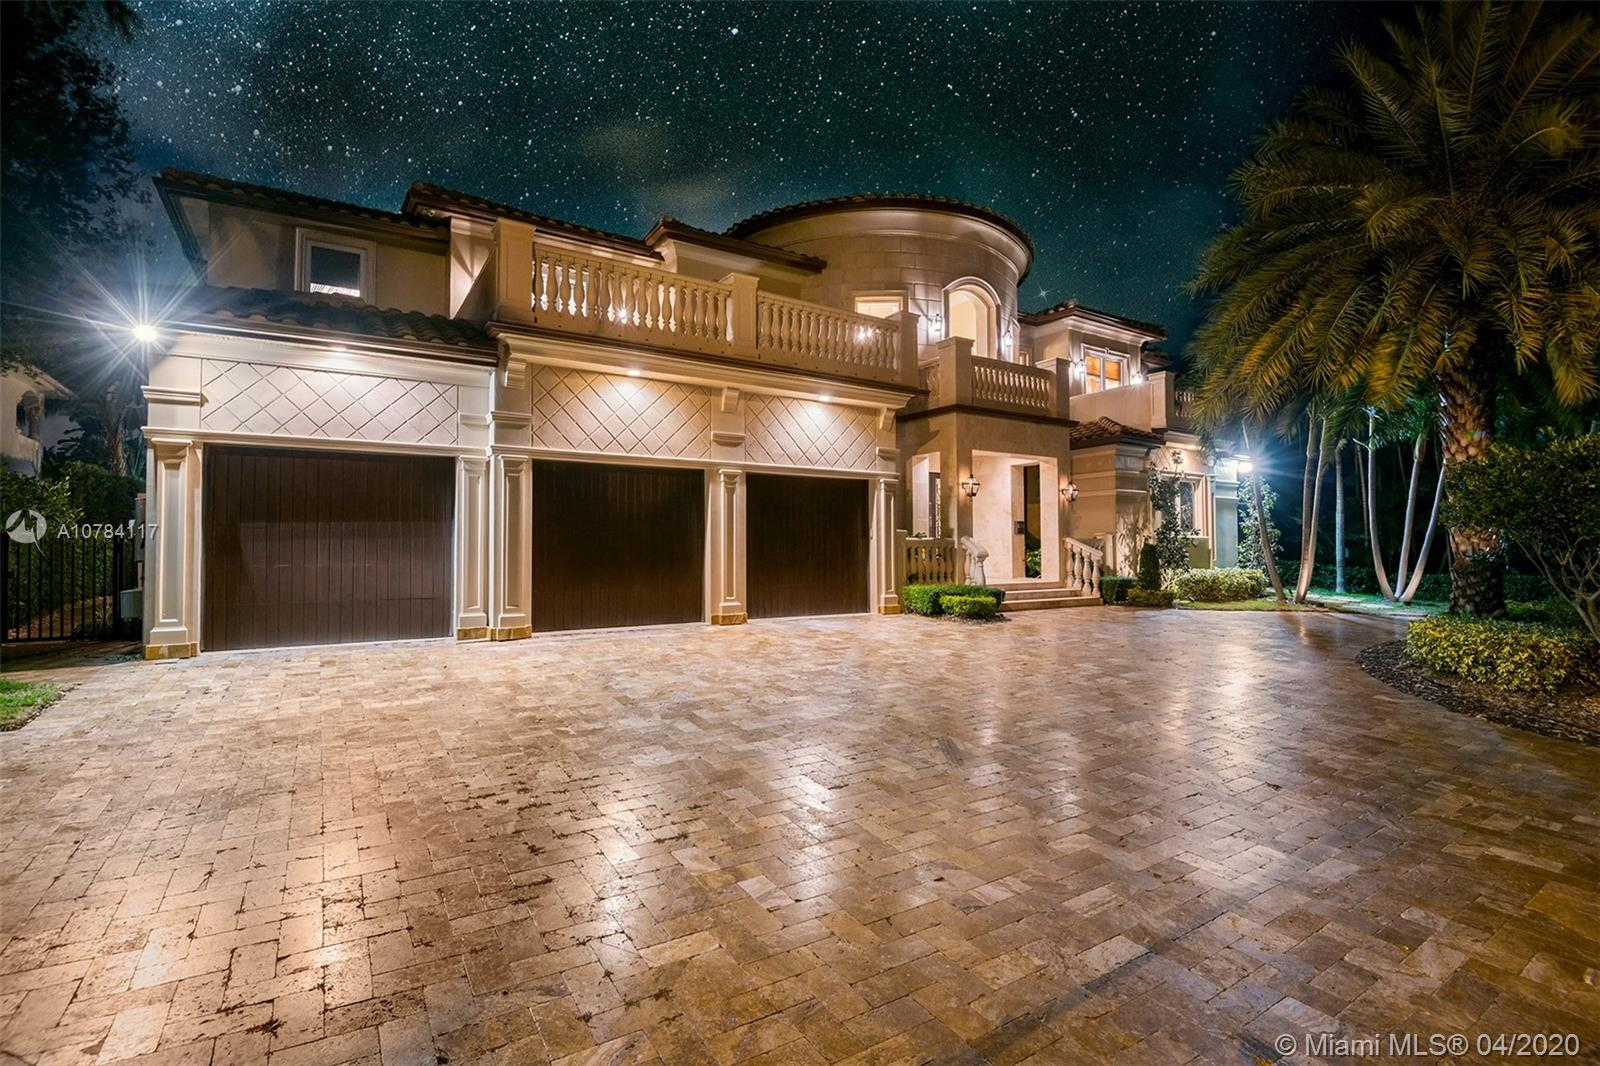 Located in the exclusive gated Harbor Beach community. This newly built home is located on a wide protected waterway. Interior features include a custom chefs kitchen with all the finest finishes elite appliances. The home's open floor in perfect for indoor outdoor lifestyle. 95' of water front, jest ski davit and boat lift, will accommodate a 75' yacht, just several homes away from the Intracoastal. The home has a master suite on the ground level and a master suite on the second level with a huge walk through closet. Media room, formal dining area, elevator, gym, office, 45' heated pool and spa with a swim up wet bar and outside BBQ. Control 4, interior and exterior cameras,  Private Harbor Beach Surf Club and Marina Membership available.